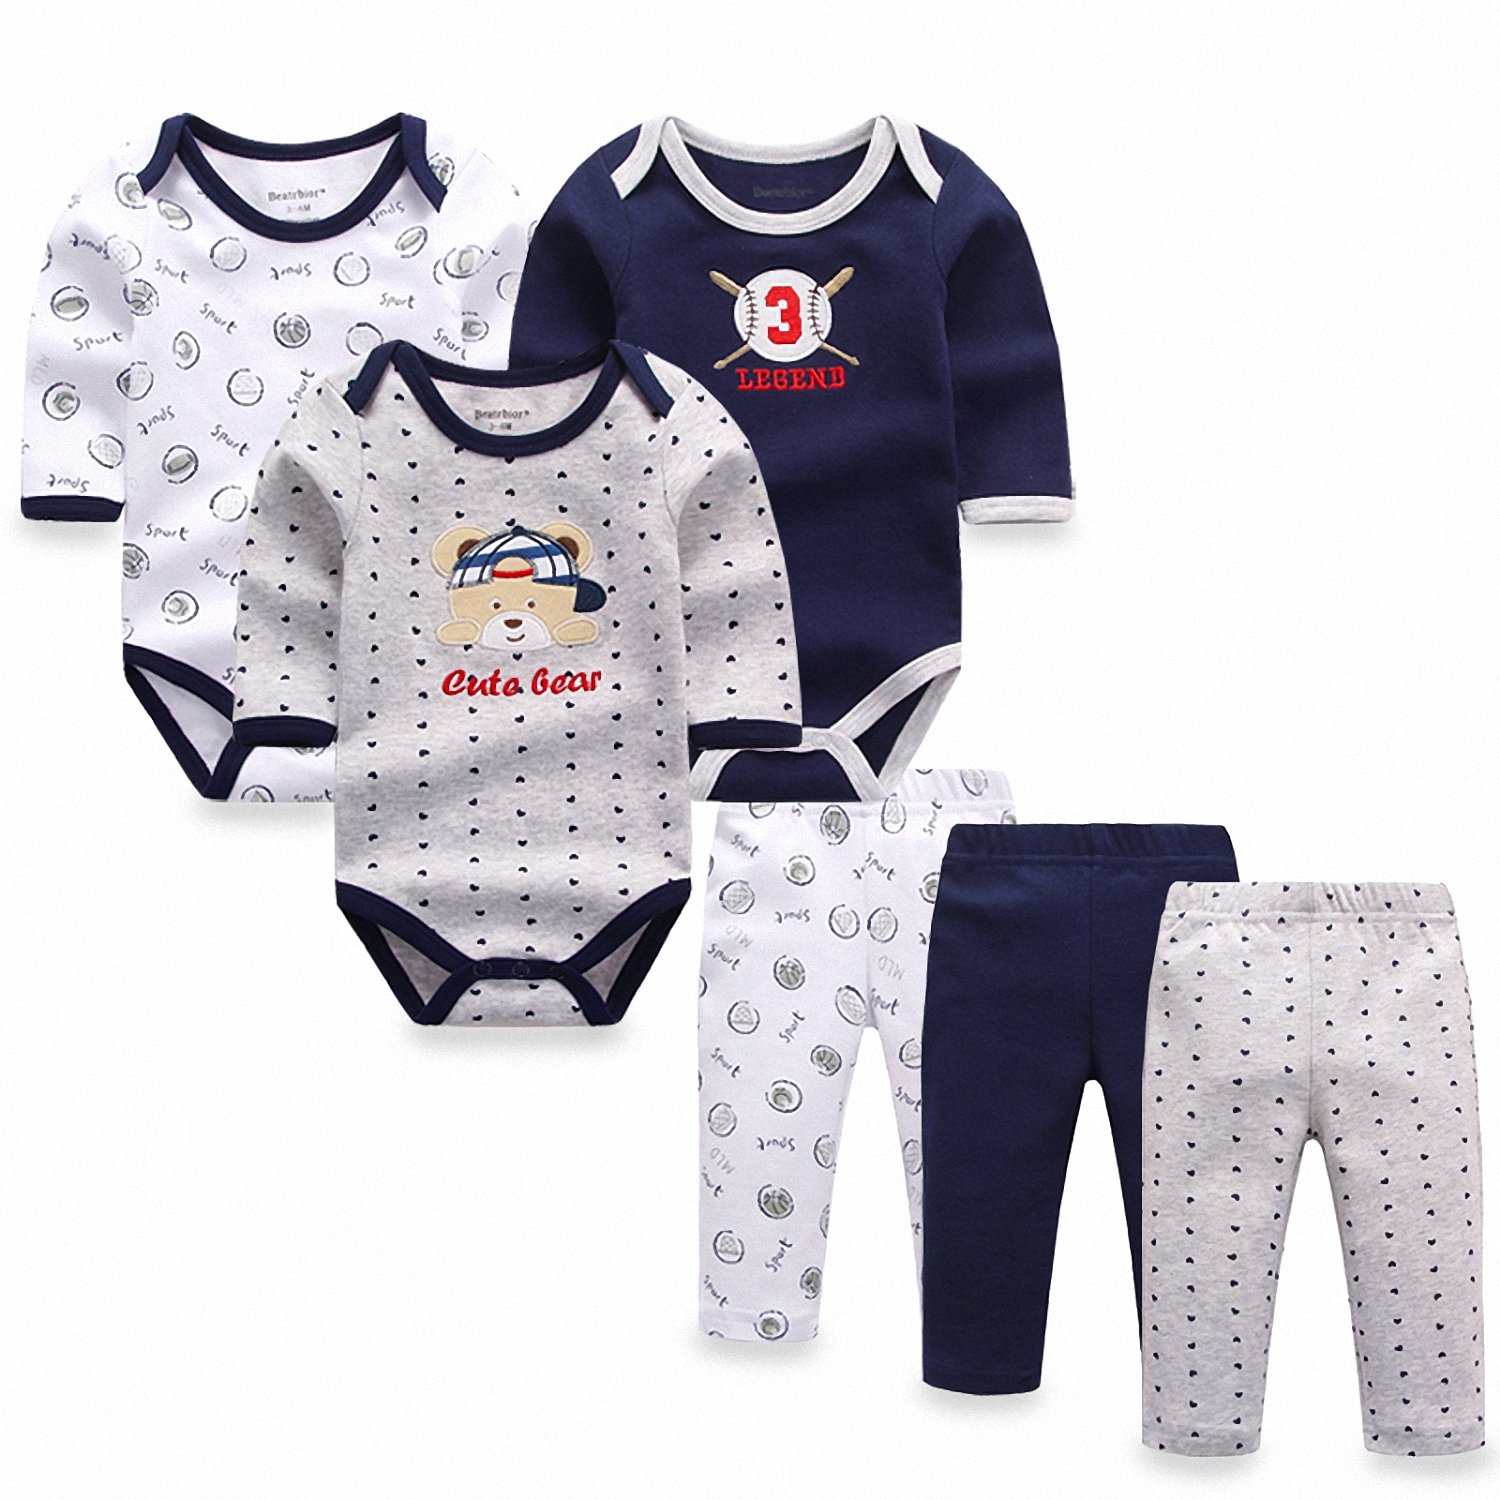 Baby Pants Baby Clothing Sets Smakke 6Pcs//Lot Baby Girl Clothes Newborn Toddler Infant Autumn//Spring Cotton Baby Rompers